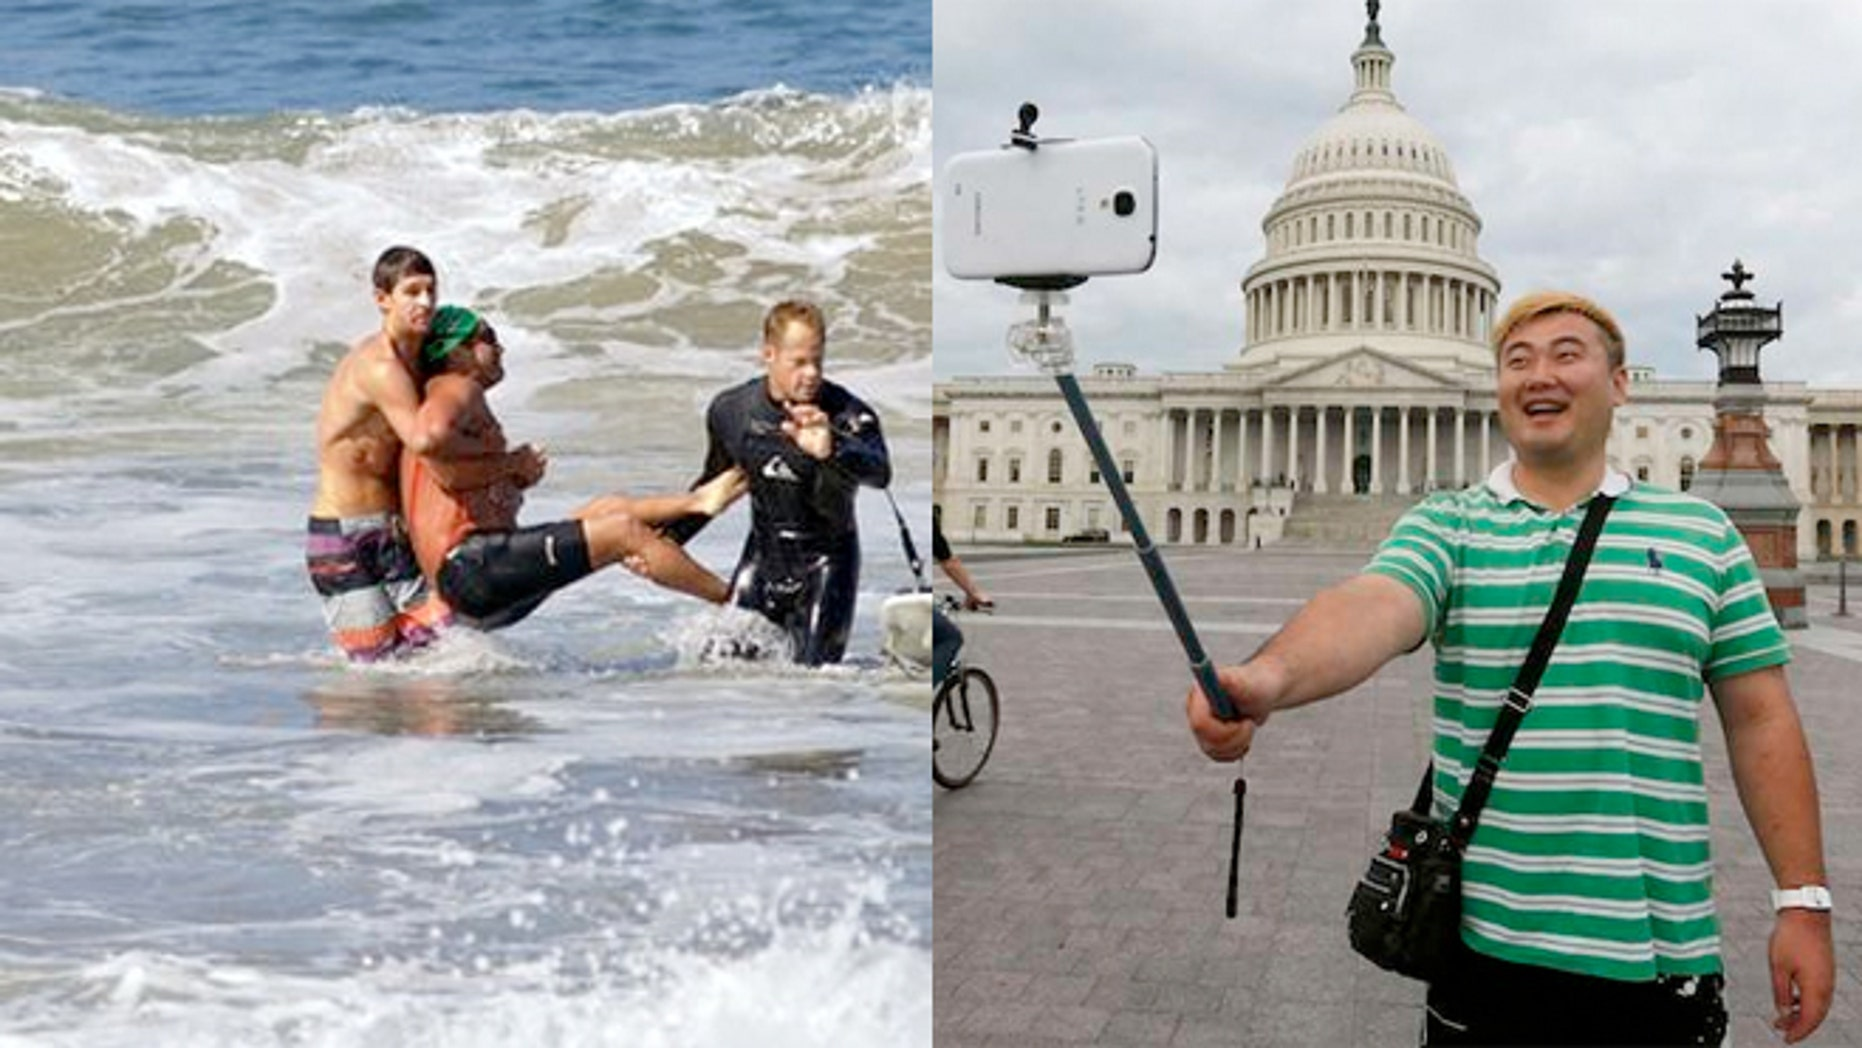 Recent deaths by people trying to take selfies prompted some to draw a comparison to shark attacks.